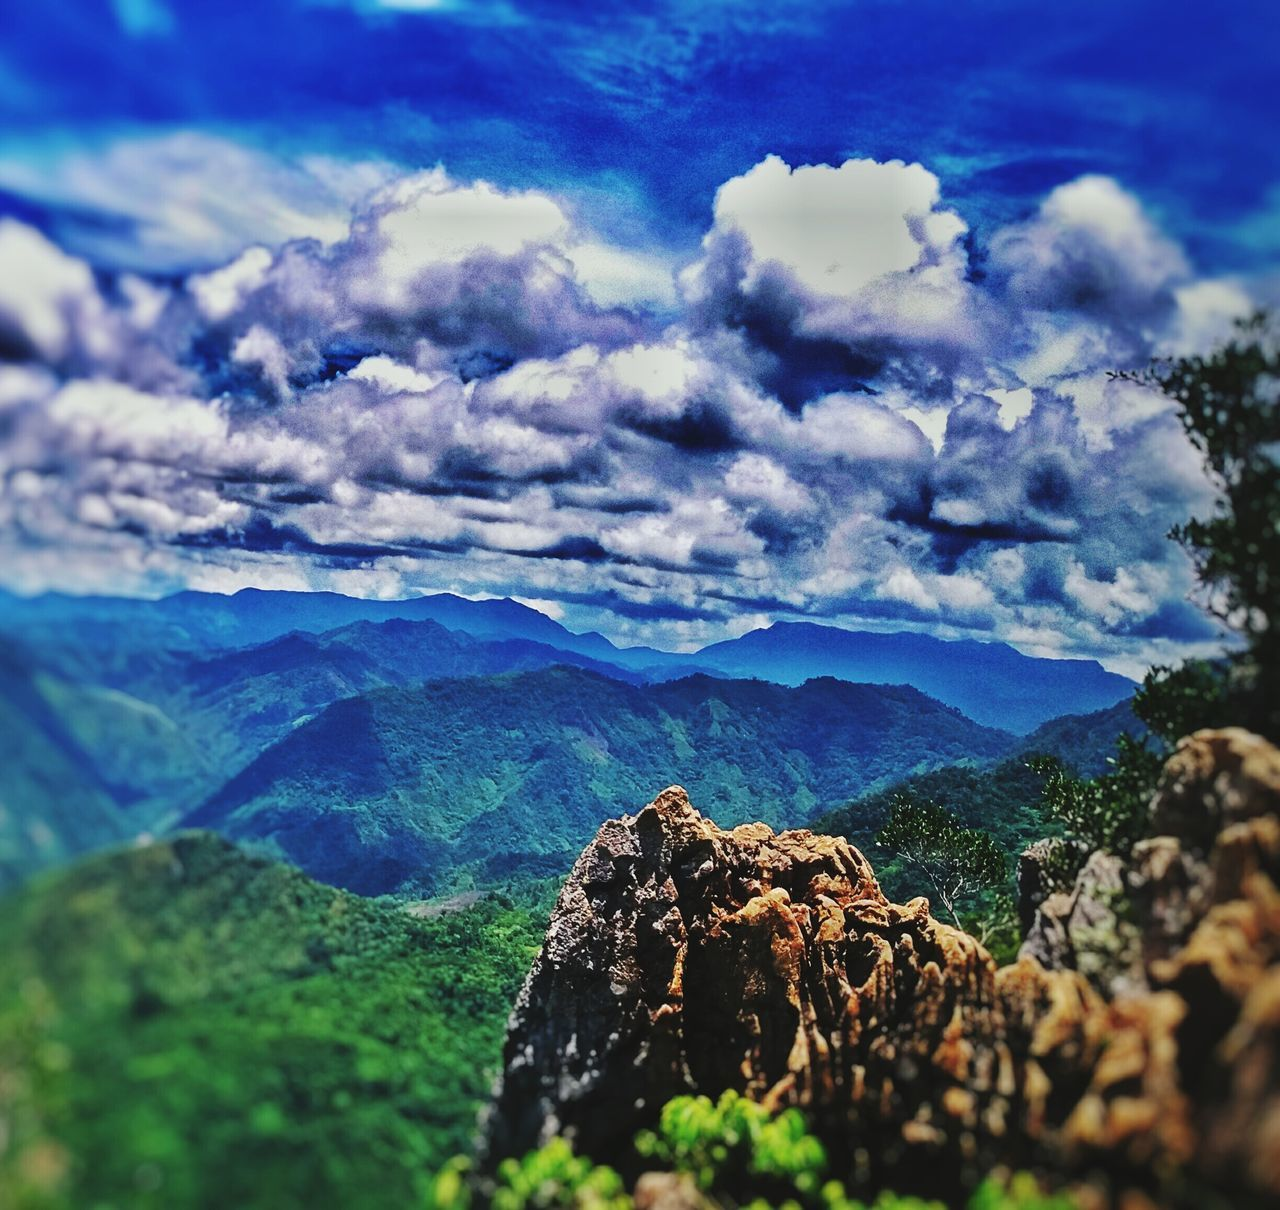 nature, mountain, beauty in nature, scenics, rock - object, tranquil scene, tranquility, no people, day, sky, outdoors, cloud - sky, physical geography